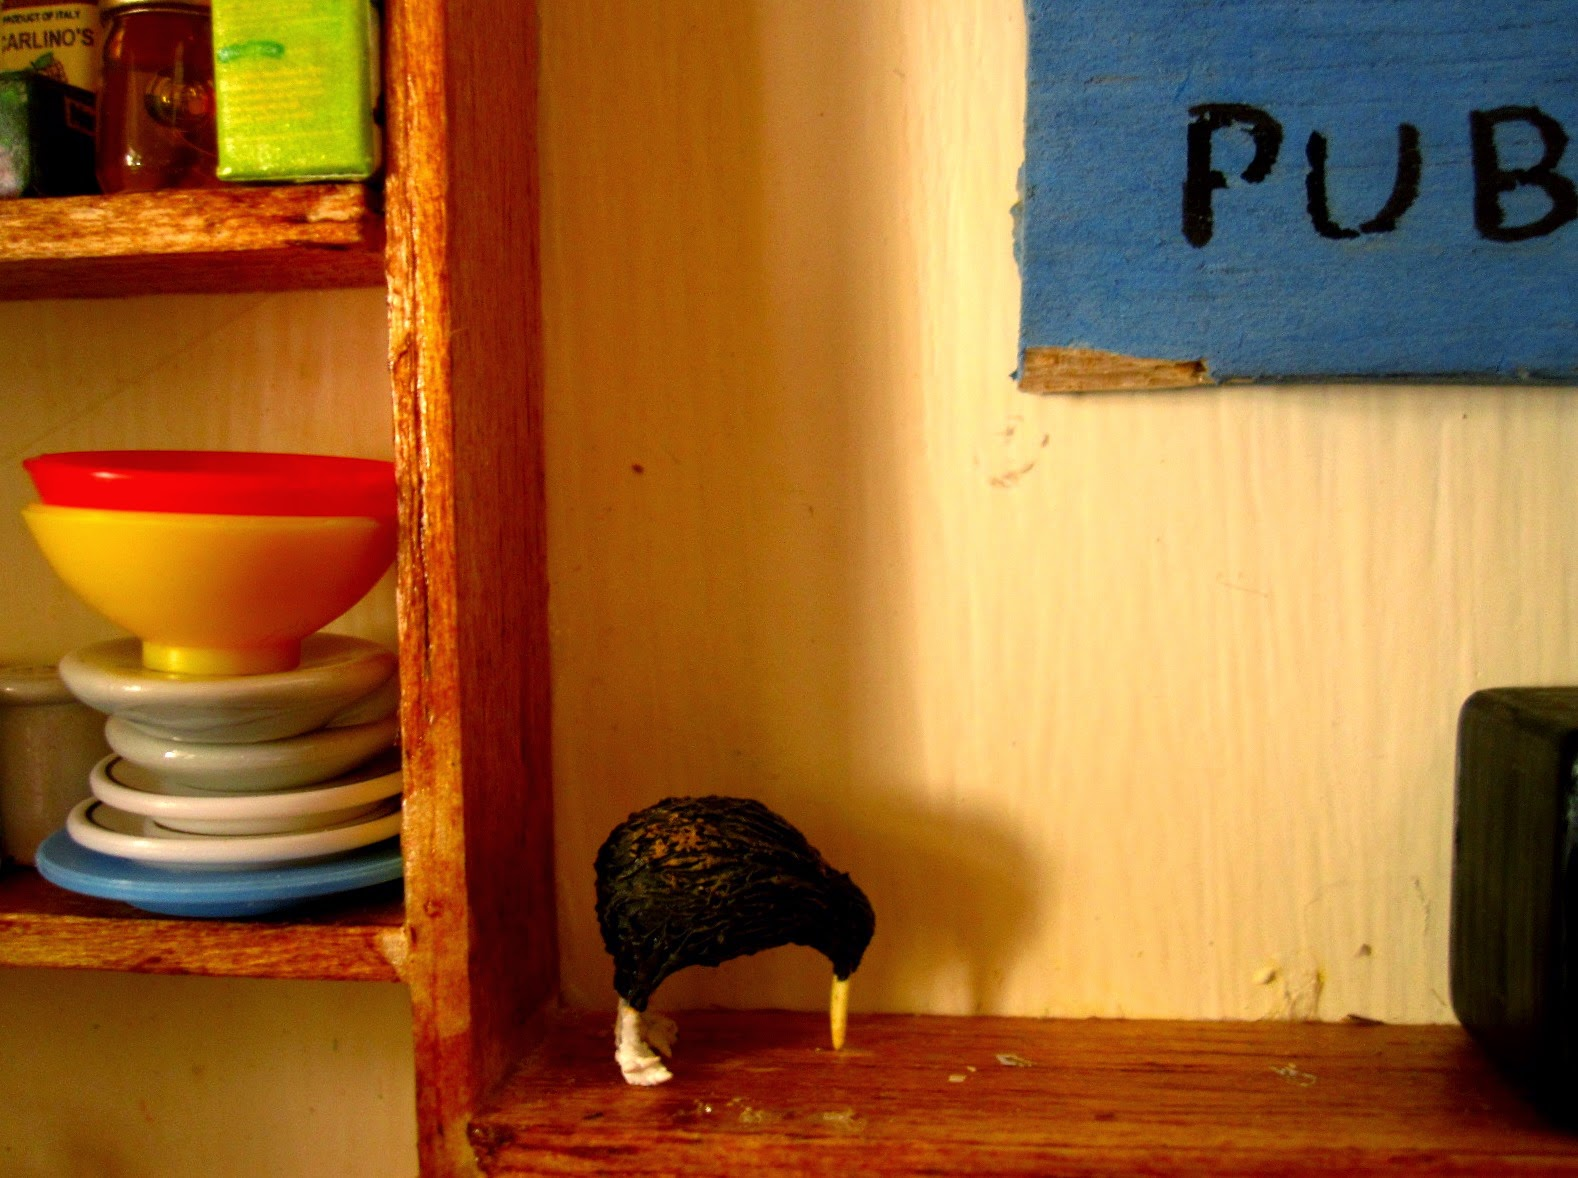 Dolls house miniature wall shelving with a kiwi ornament placed on it, next to a pile of plates and dishes  and a shelf of food items.